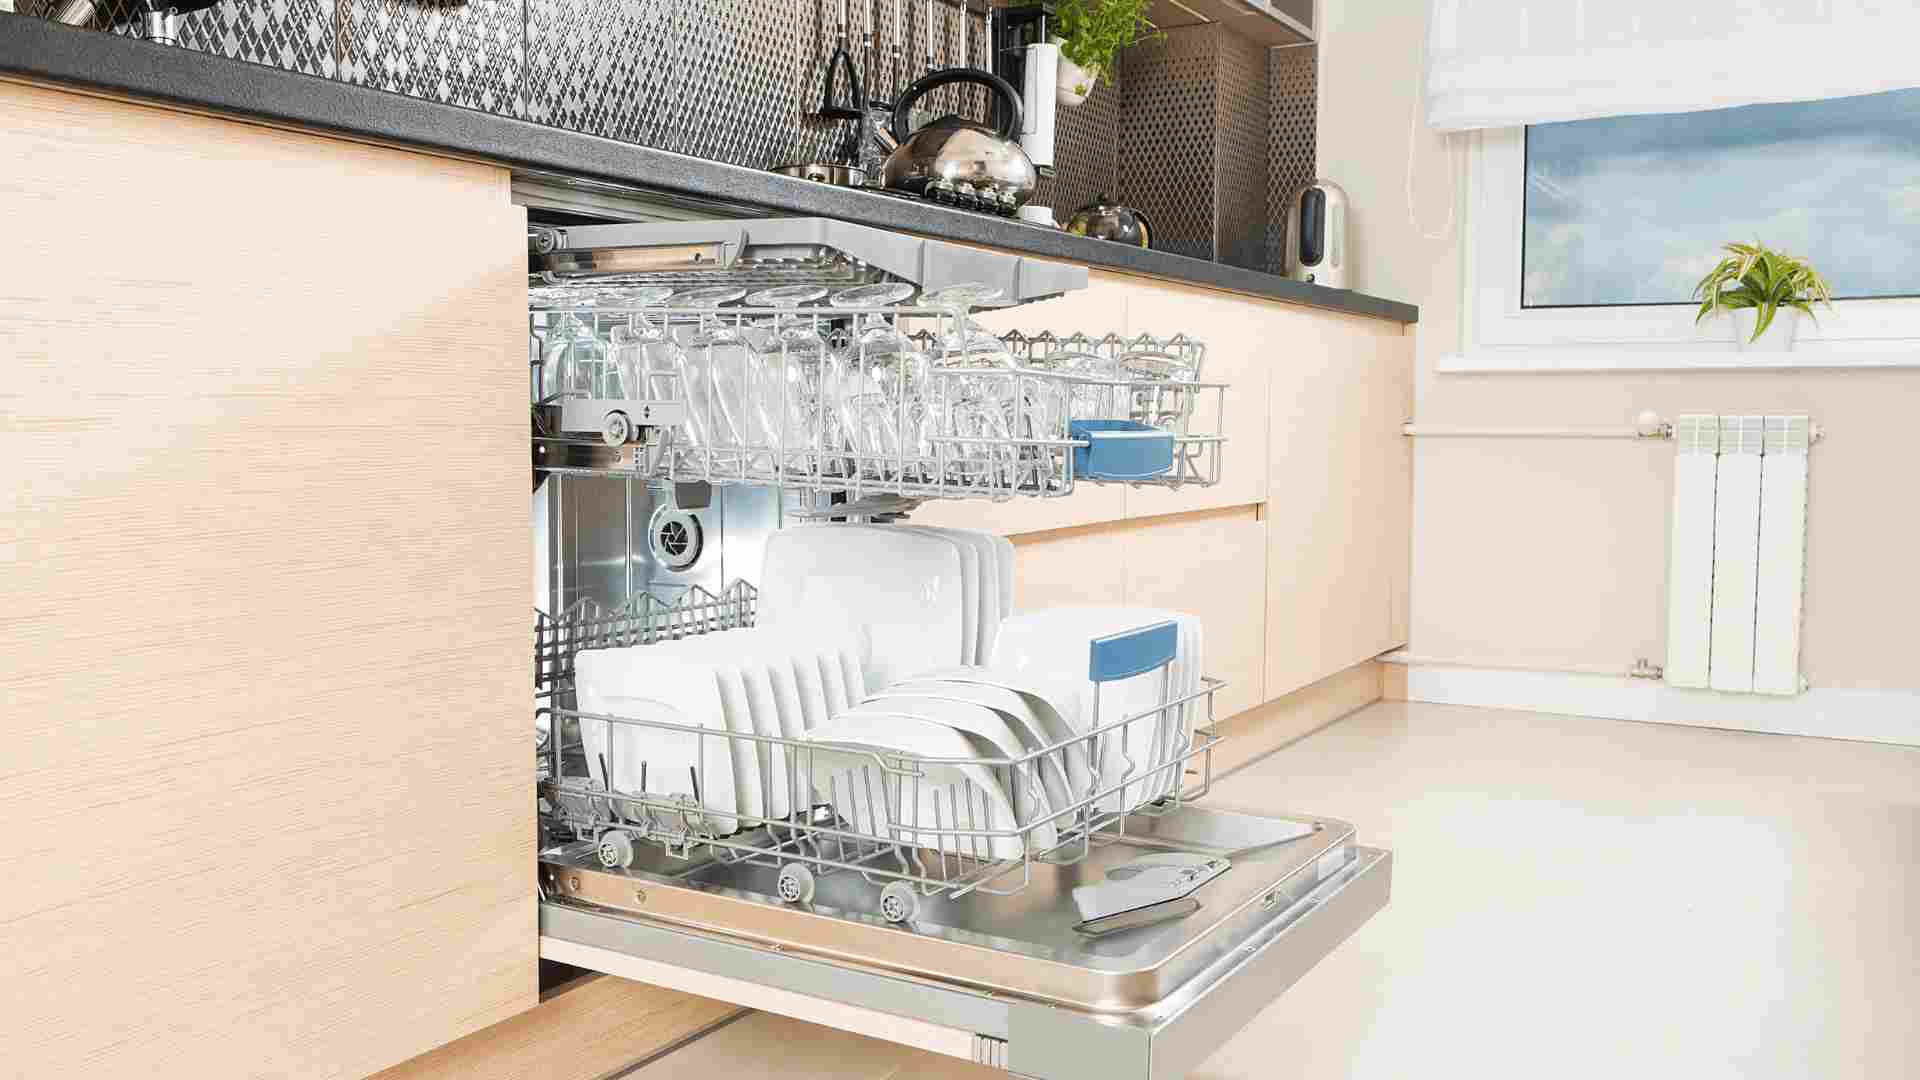 Can-you-turn-off-dishwasher-mid-cycle-featured-image